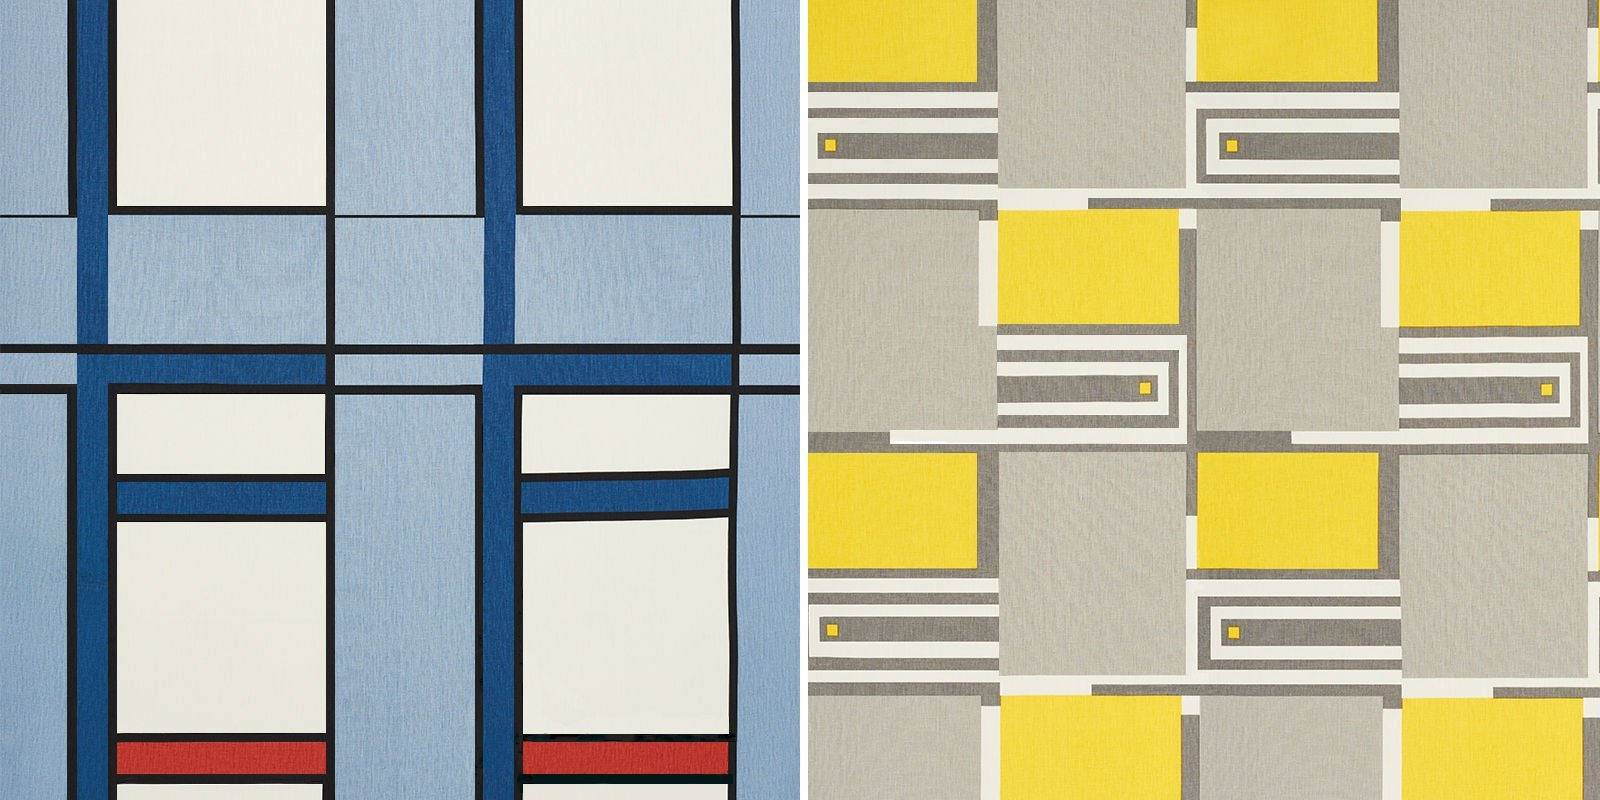 Textile Designs by Frank Lloyd Wright – Available Now